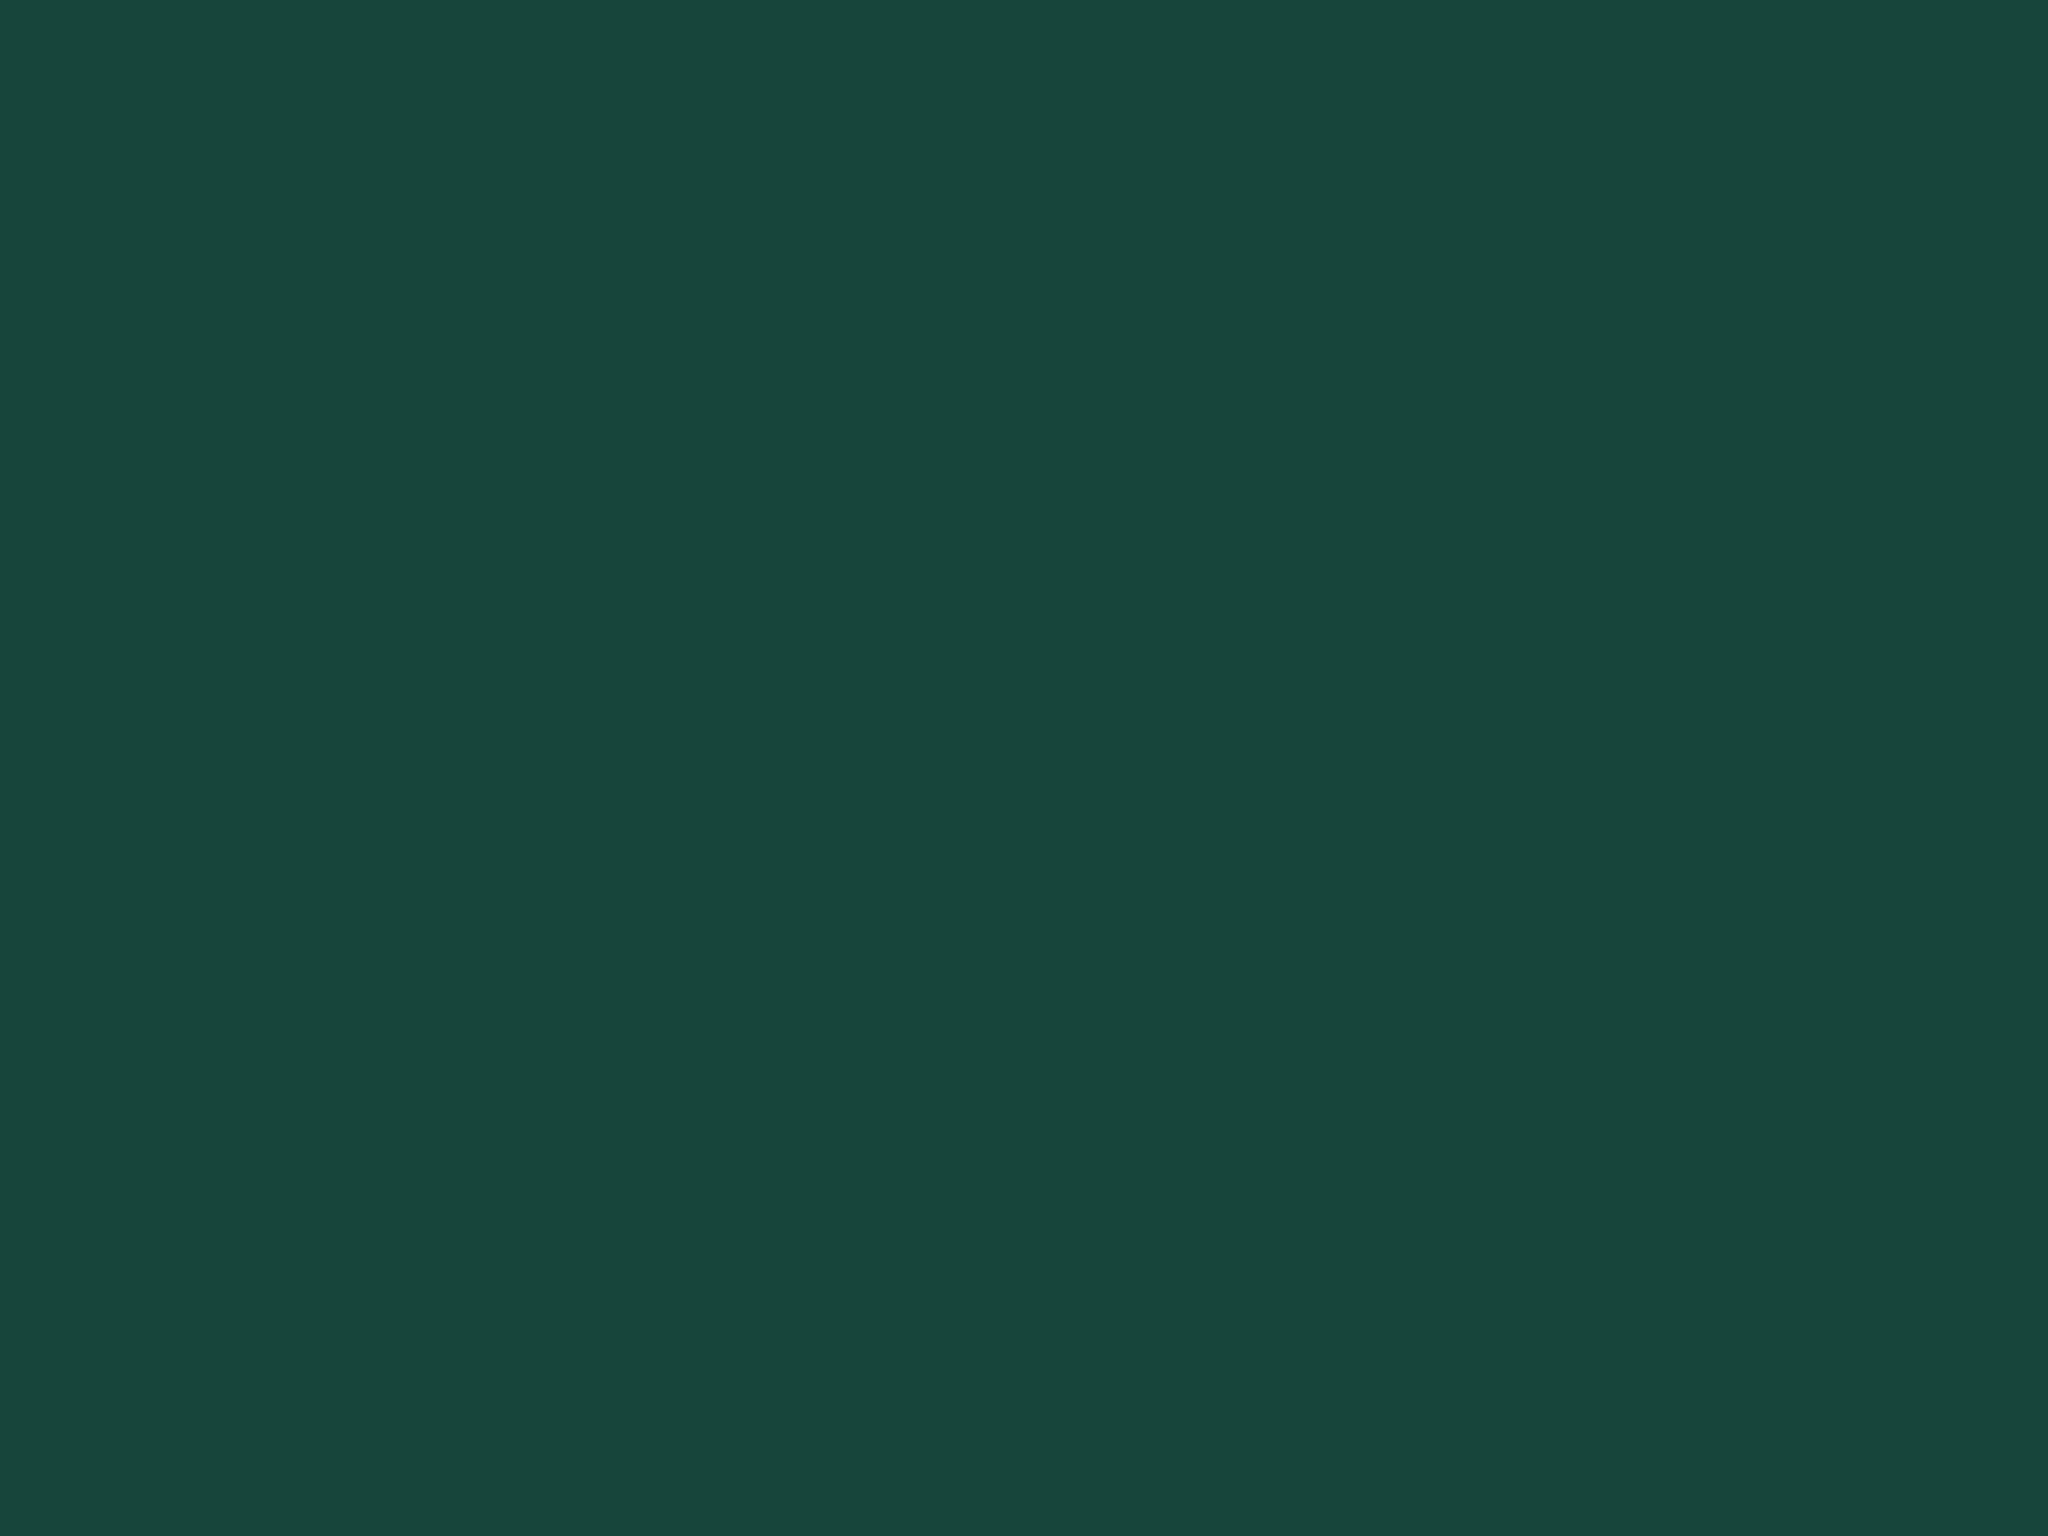 2048x1536 MSU Green Solid Color Background